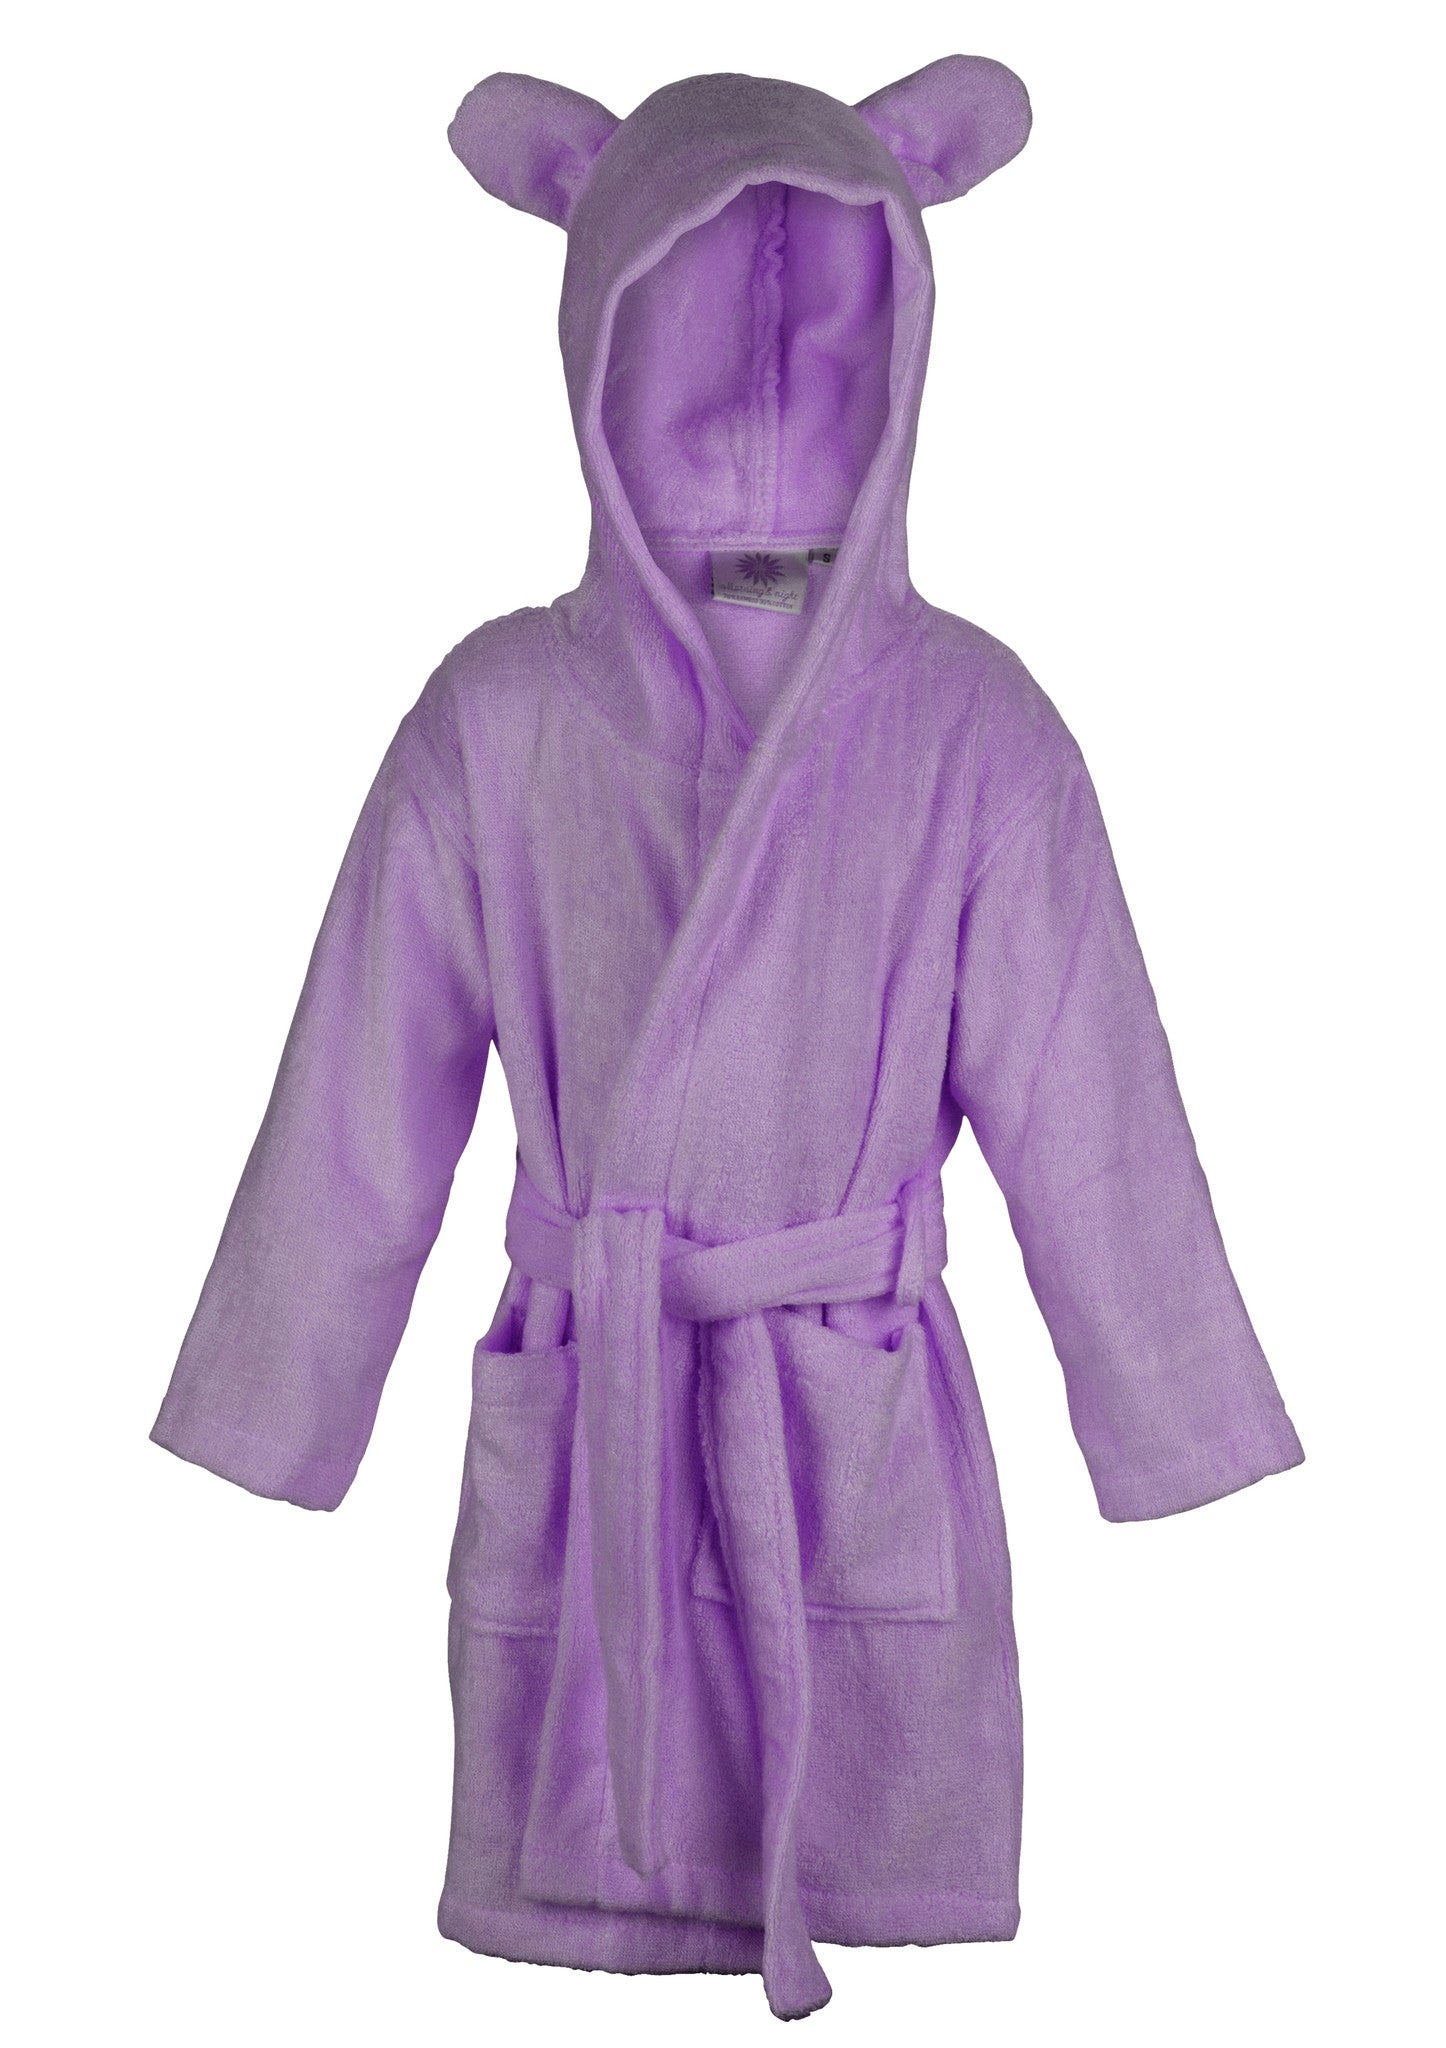 brown 70 bamboo hooded baby bathrobe with ears morning and night